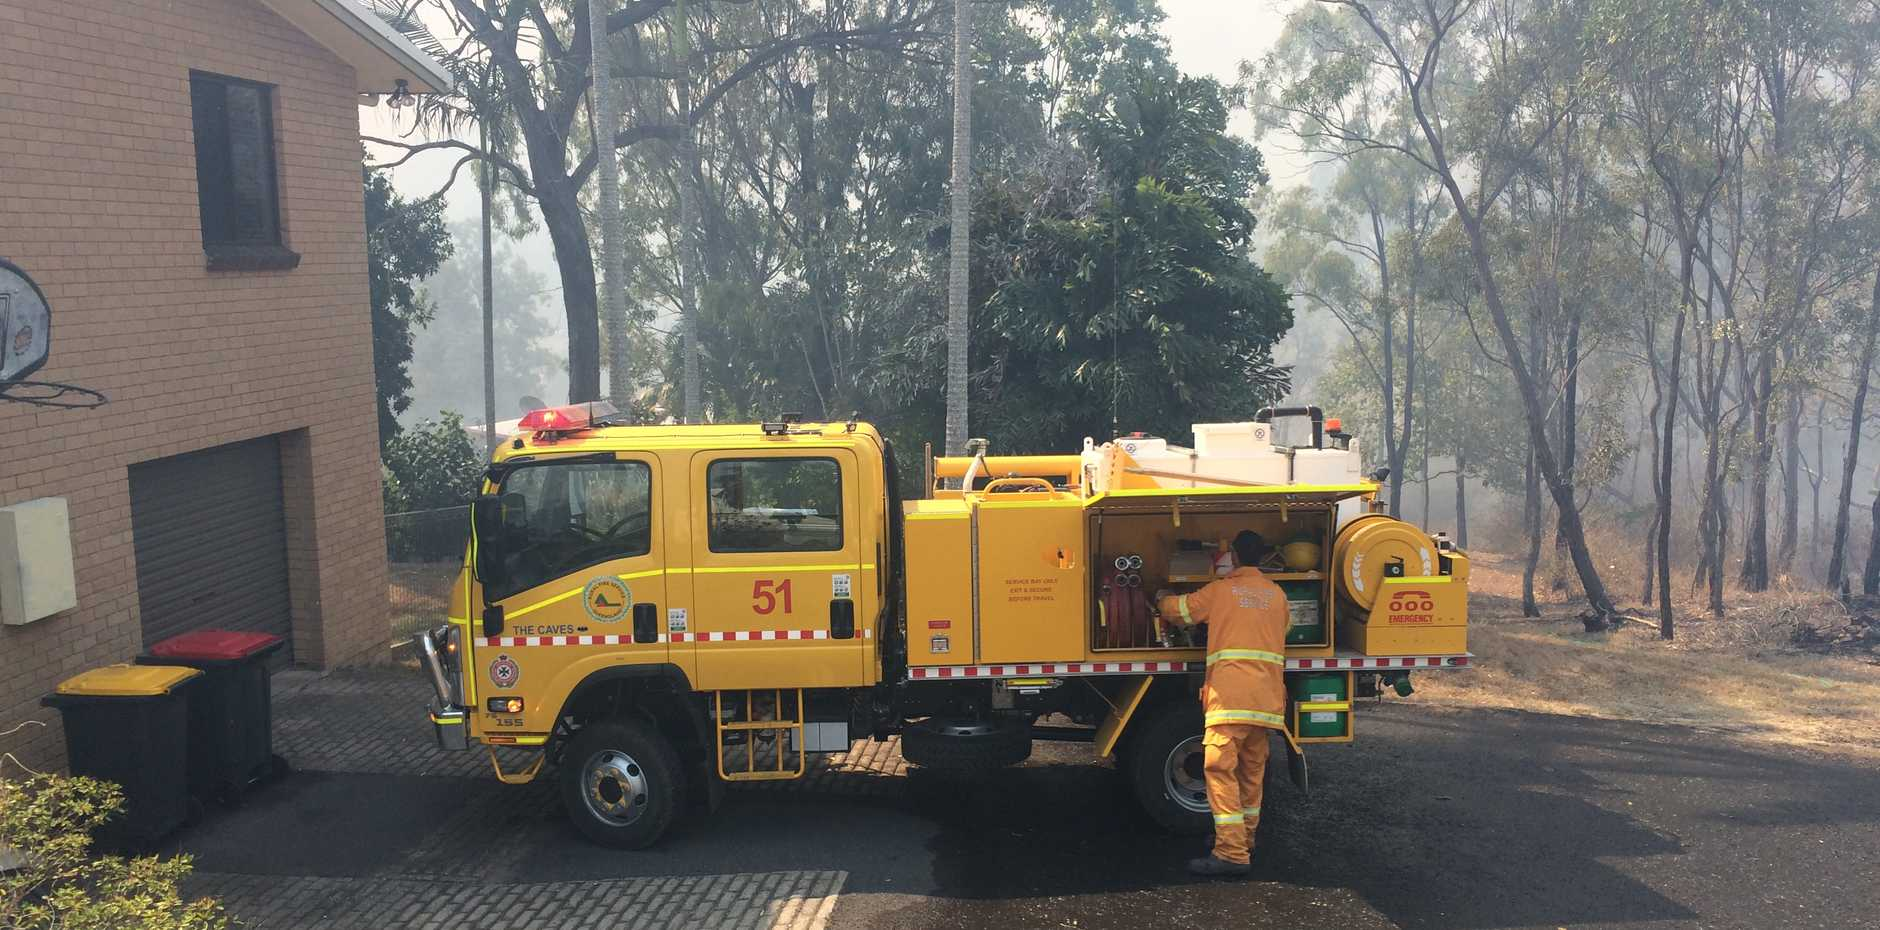 BUSHFIRE BATTLE: Multiple fire crews have converged on streets in the Frenchville where a bushfire is threatening the area.